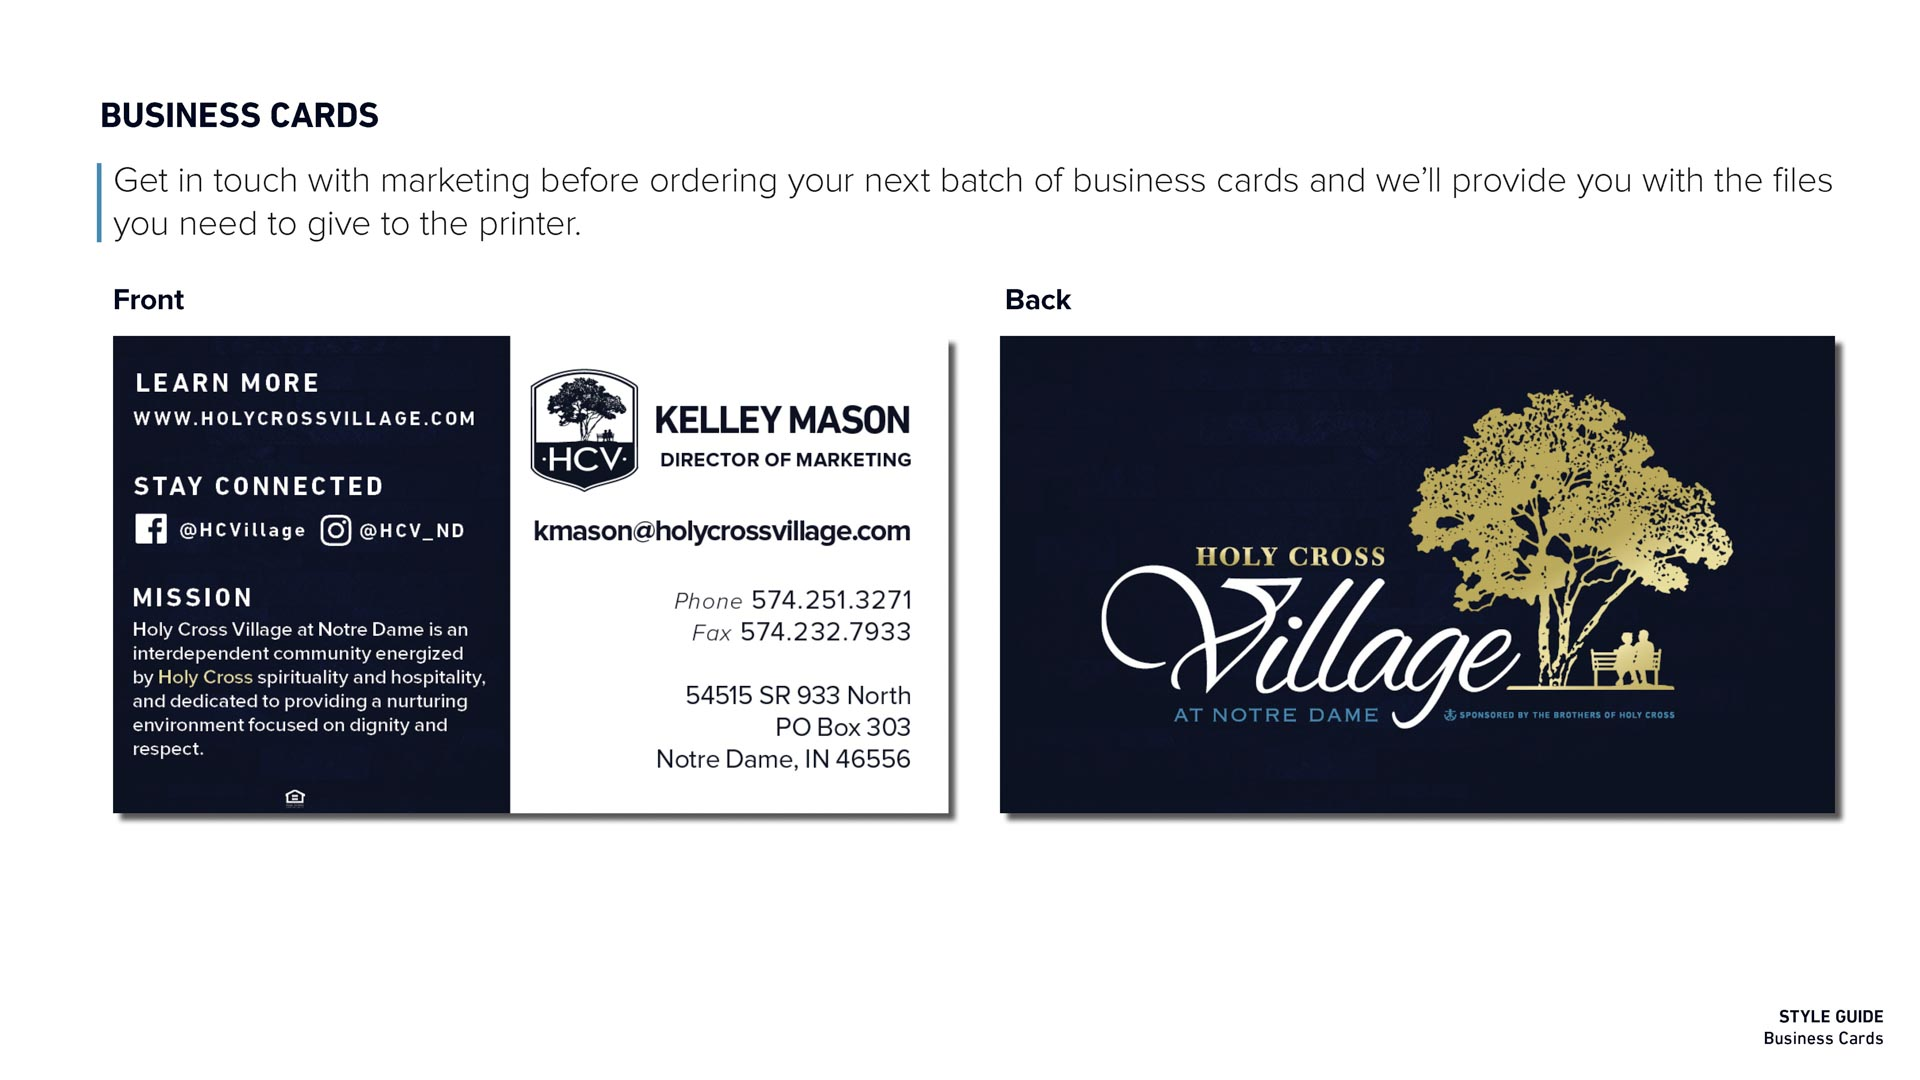 Holy Cross Village's Business Card